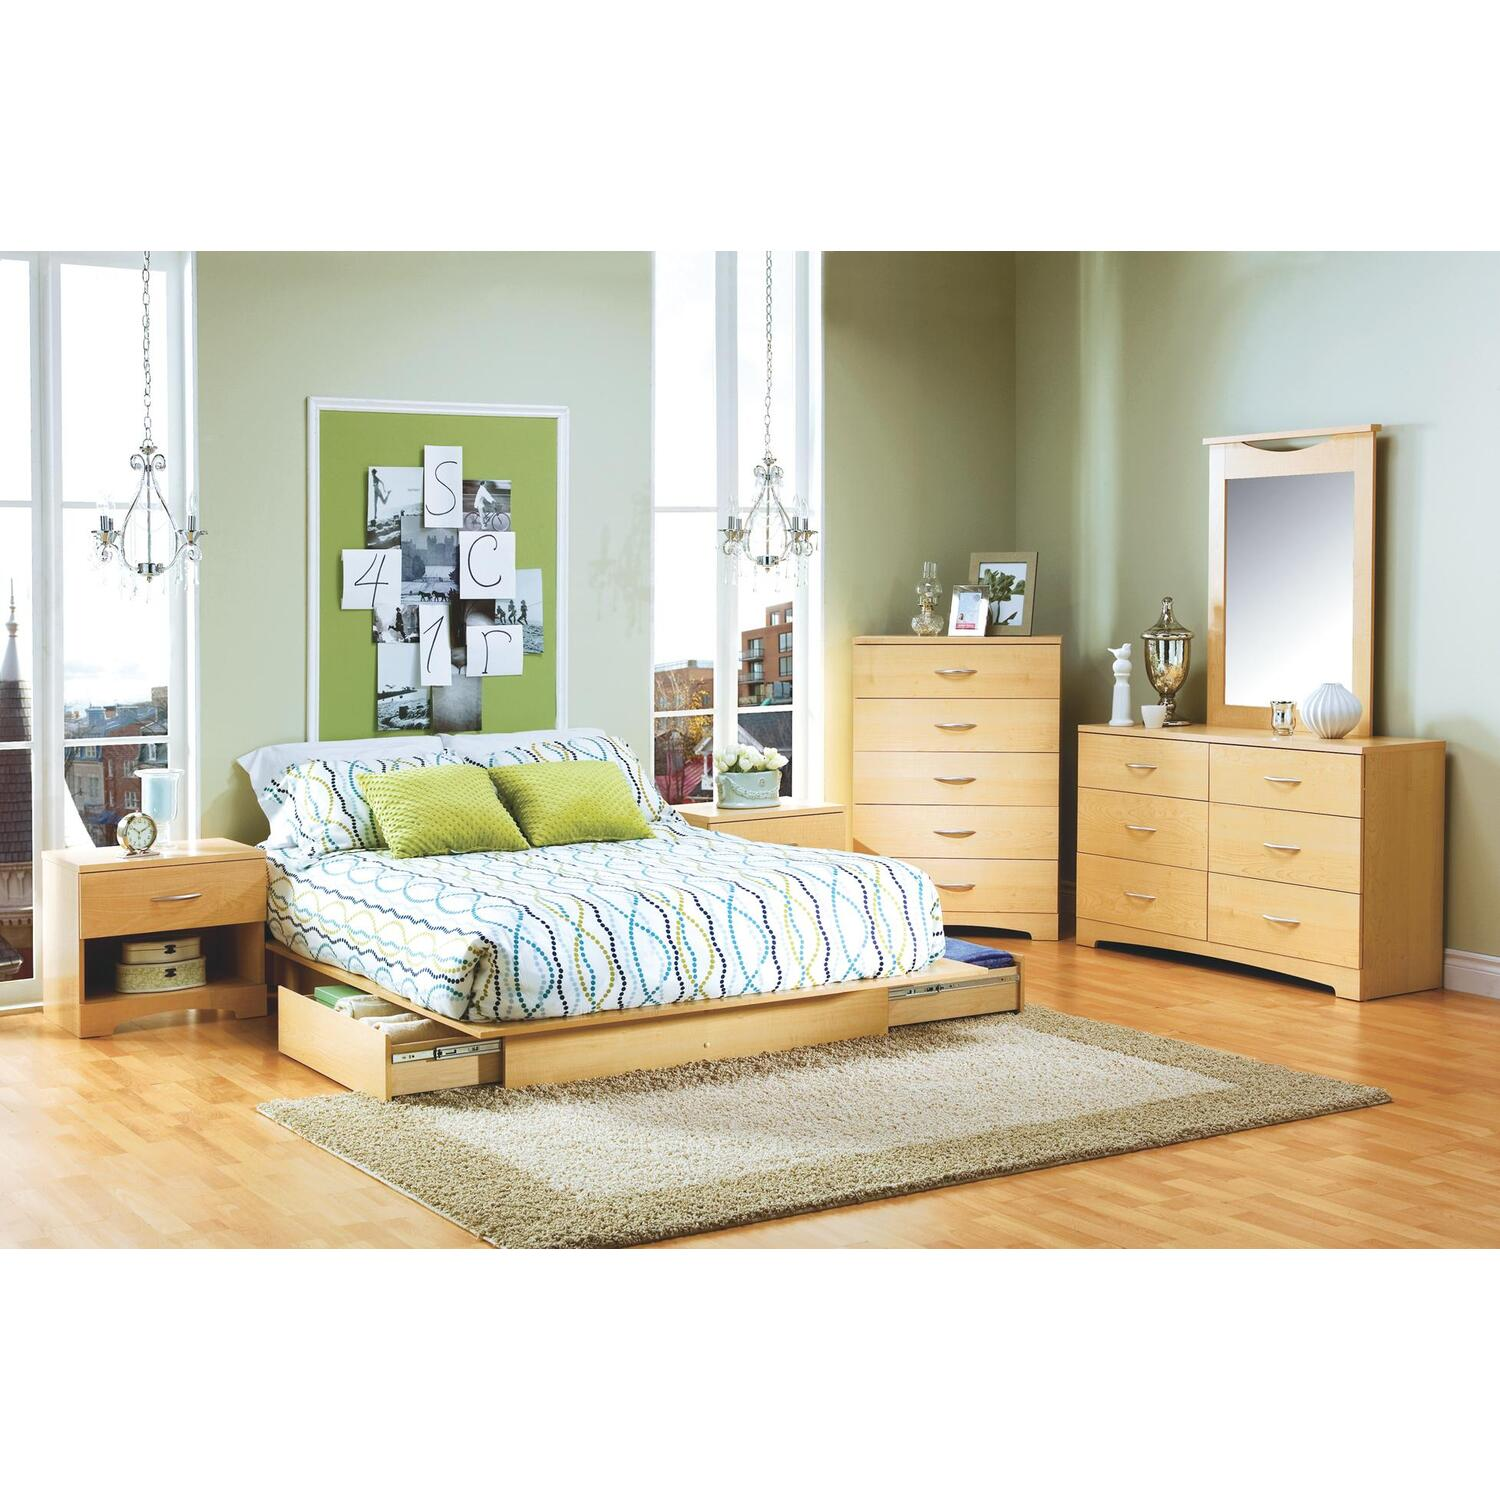 Copley Full/Queen Platform Bed 6 Piece Bedroom Set